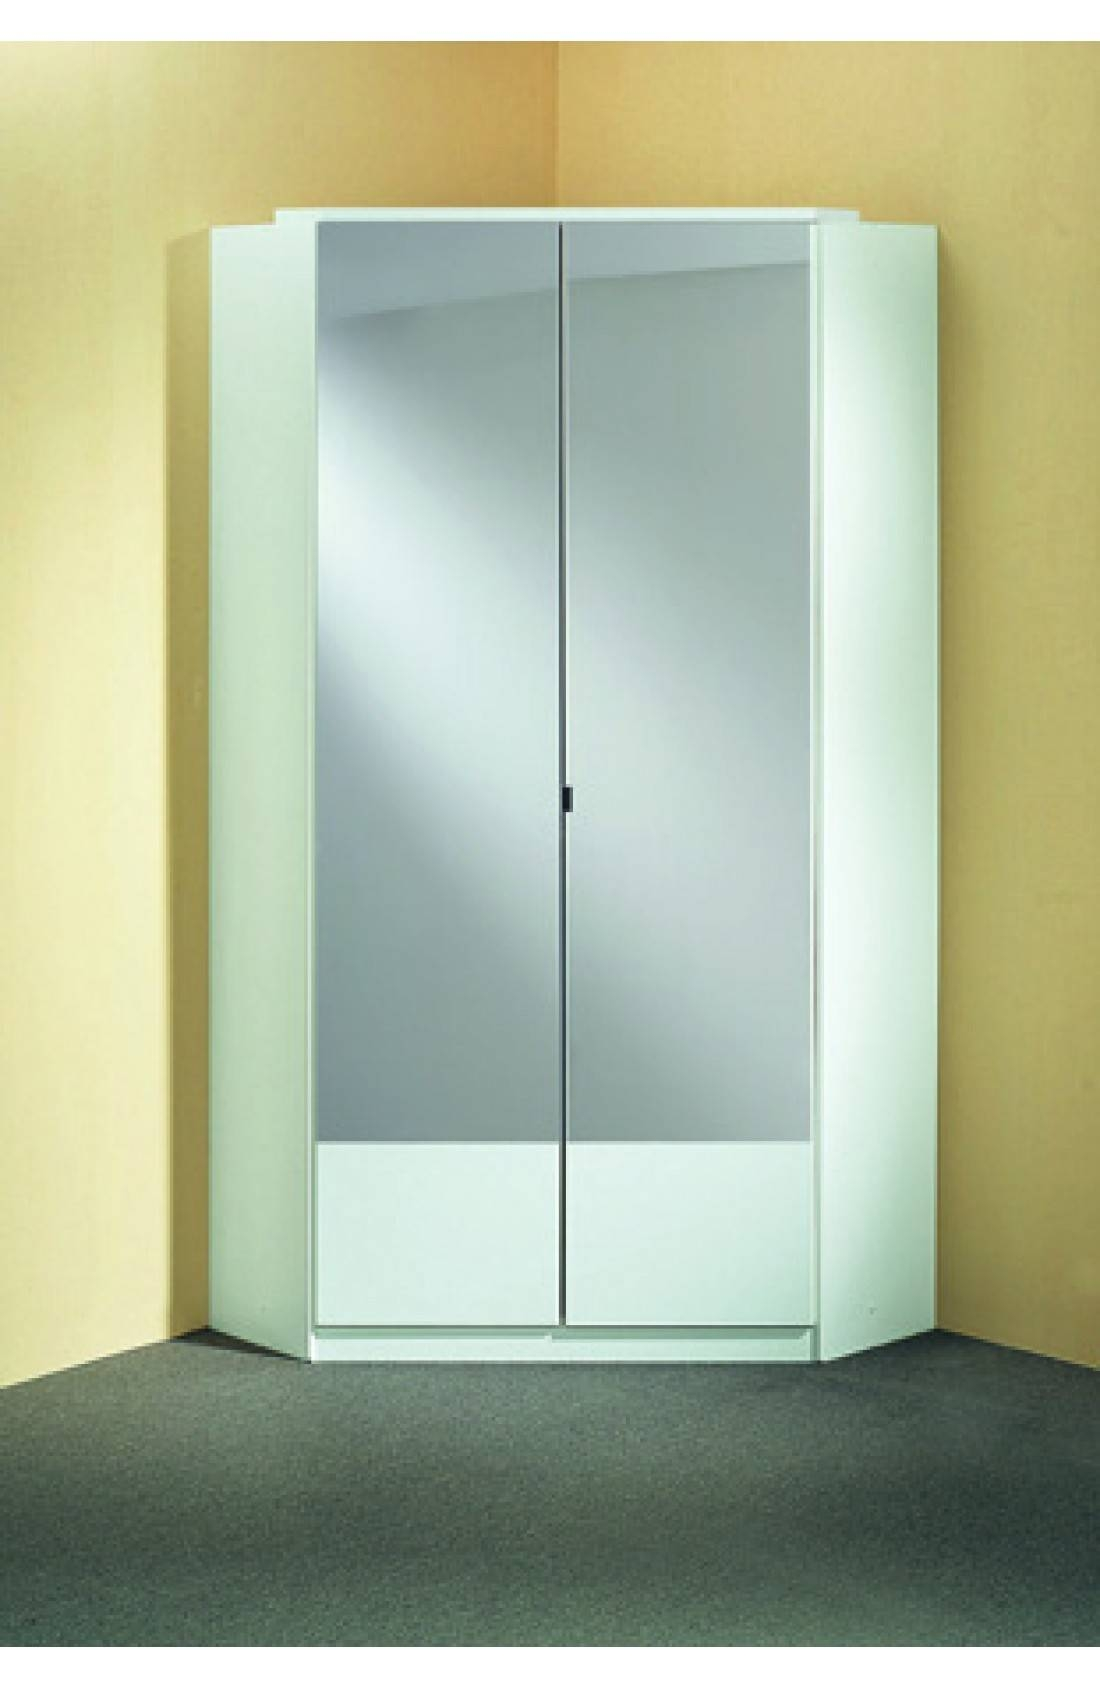 Slumberhaus 'imago' German Made Modern Alpine White & Mirror 2 inside 1 Door Corner Wardrobes (Image 13 of 15)